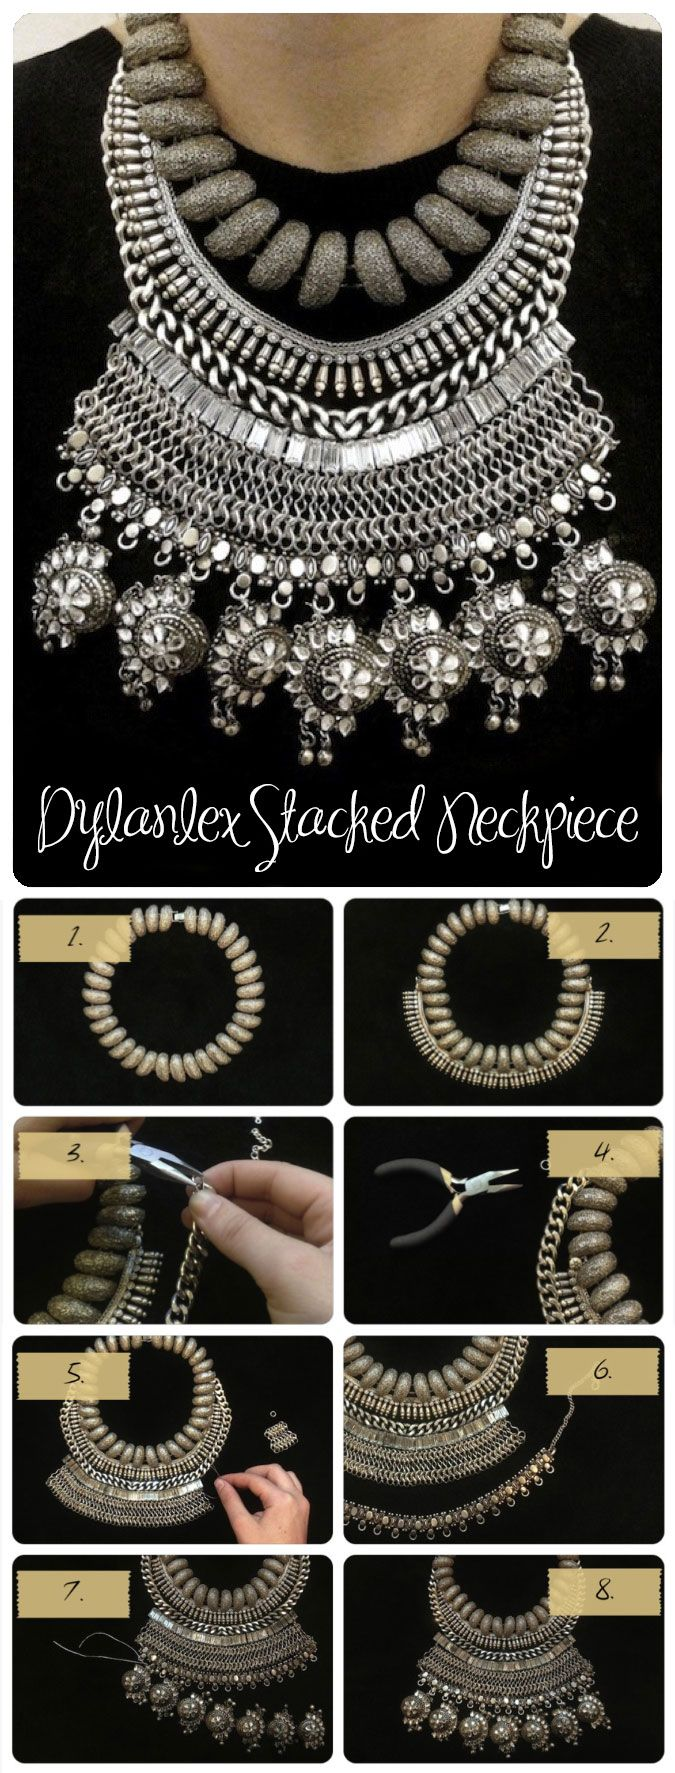 Best DIY Tutorials - DIY Dylanlex Stacked Necklace